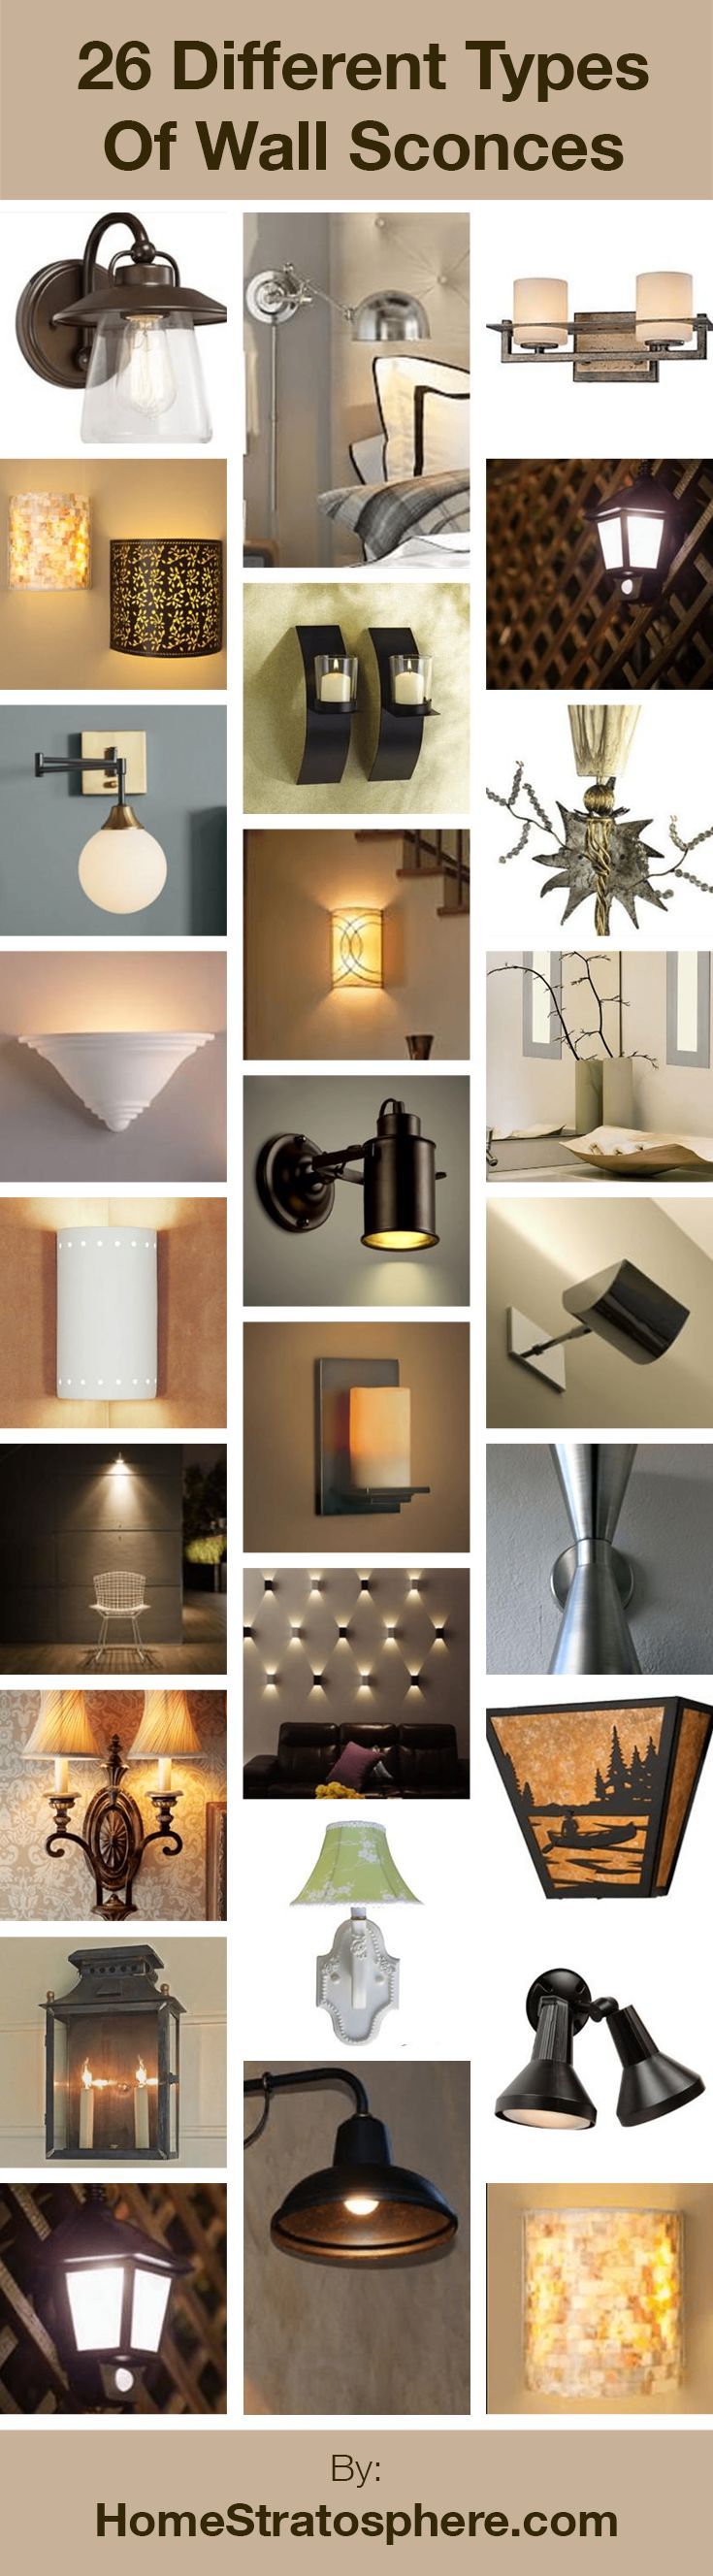 282 best front backyard ideas images on pinterest backyard 26 different types of wall sconces ultimate buying guide amipublicfo Gallery